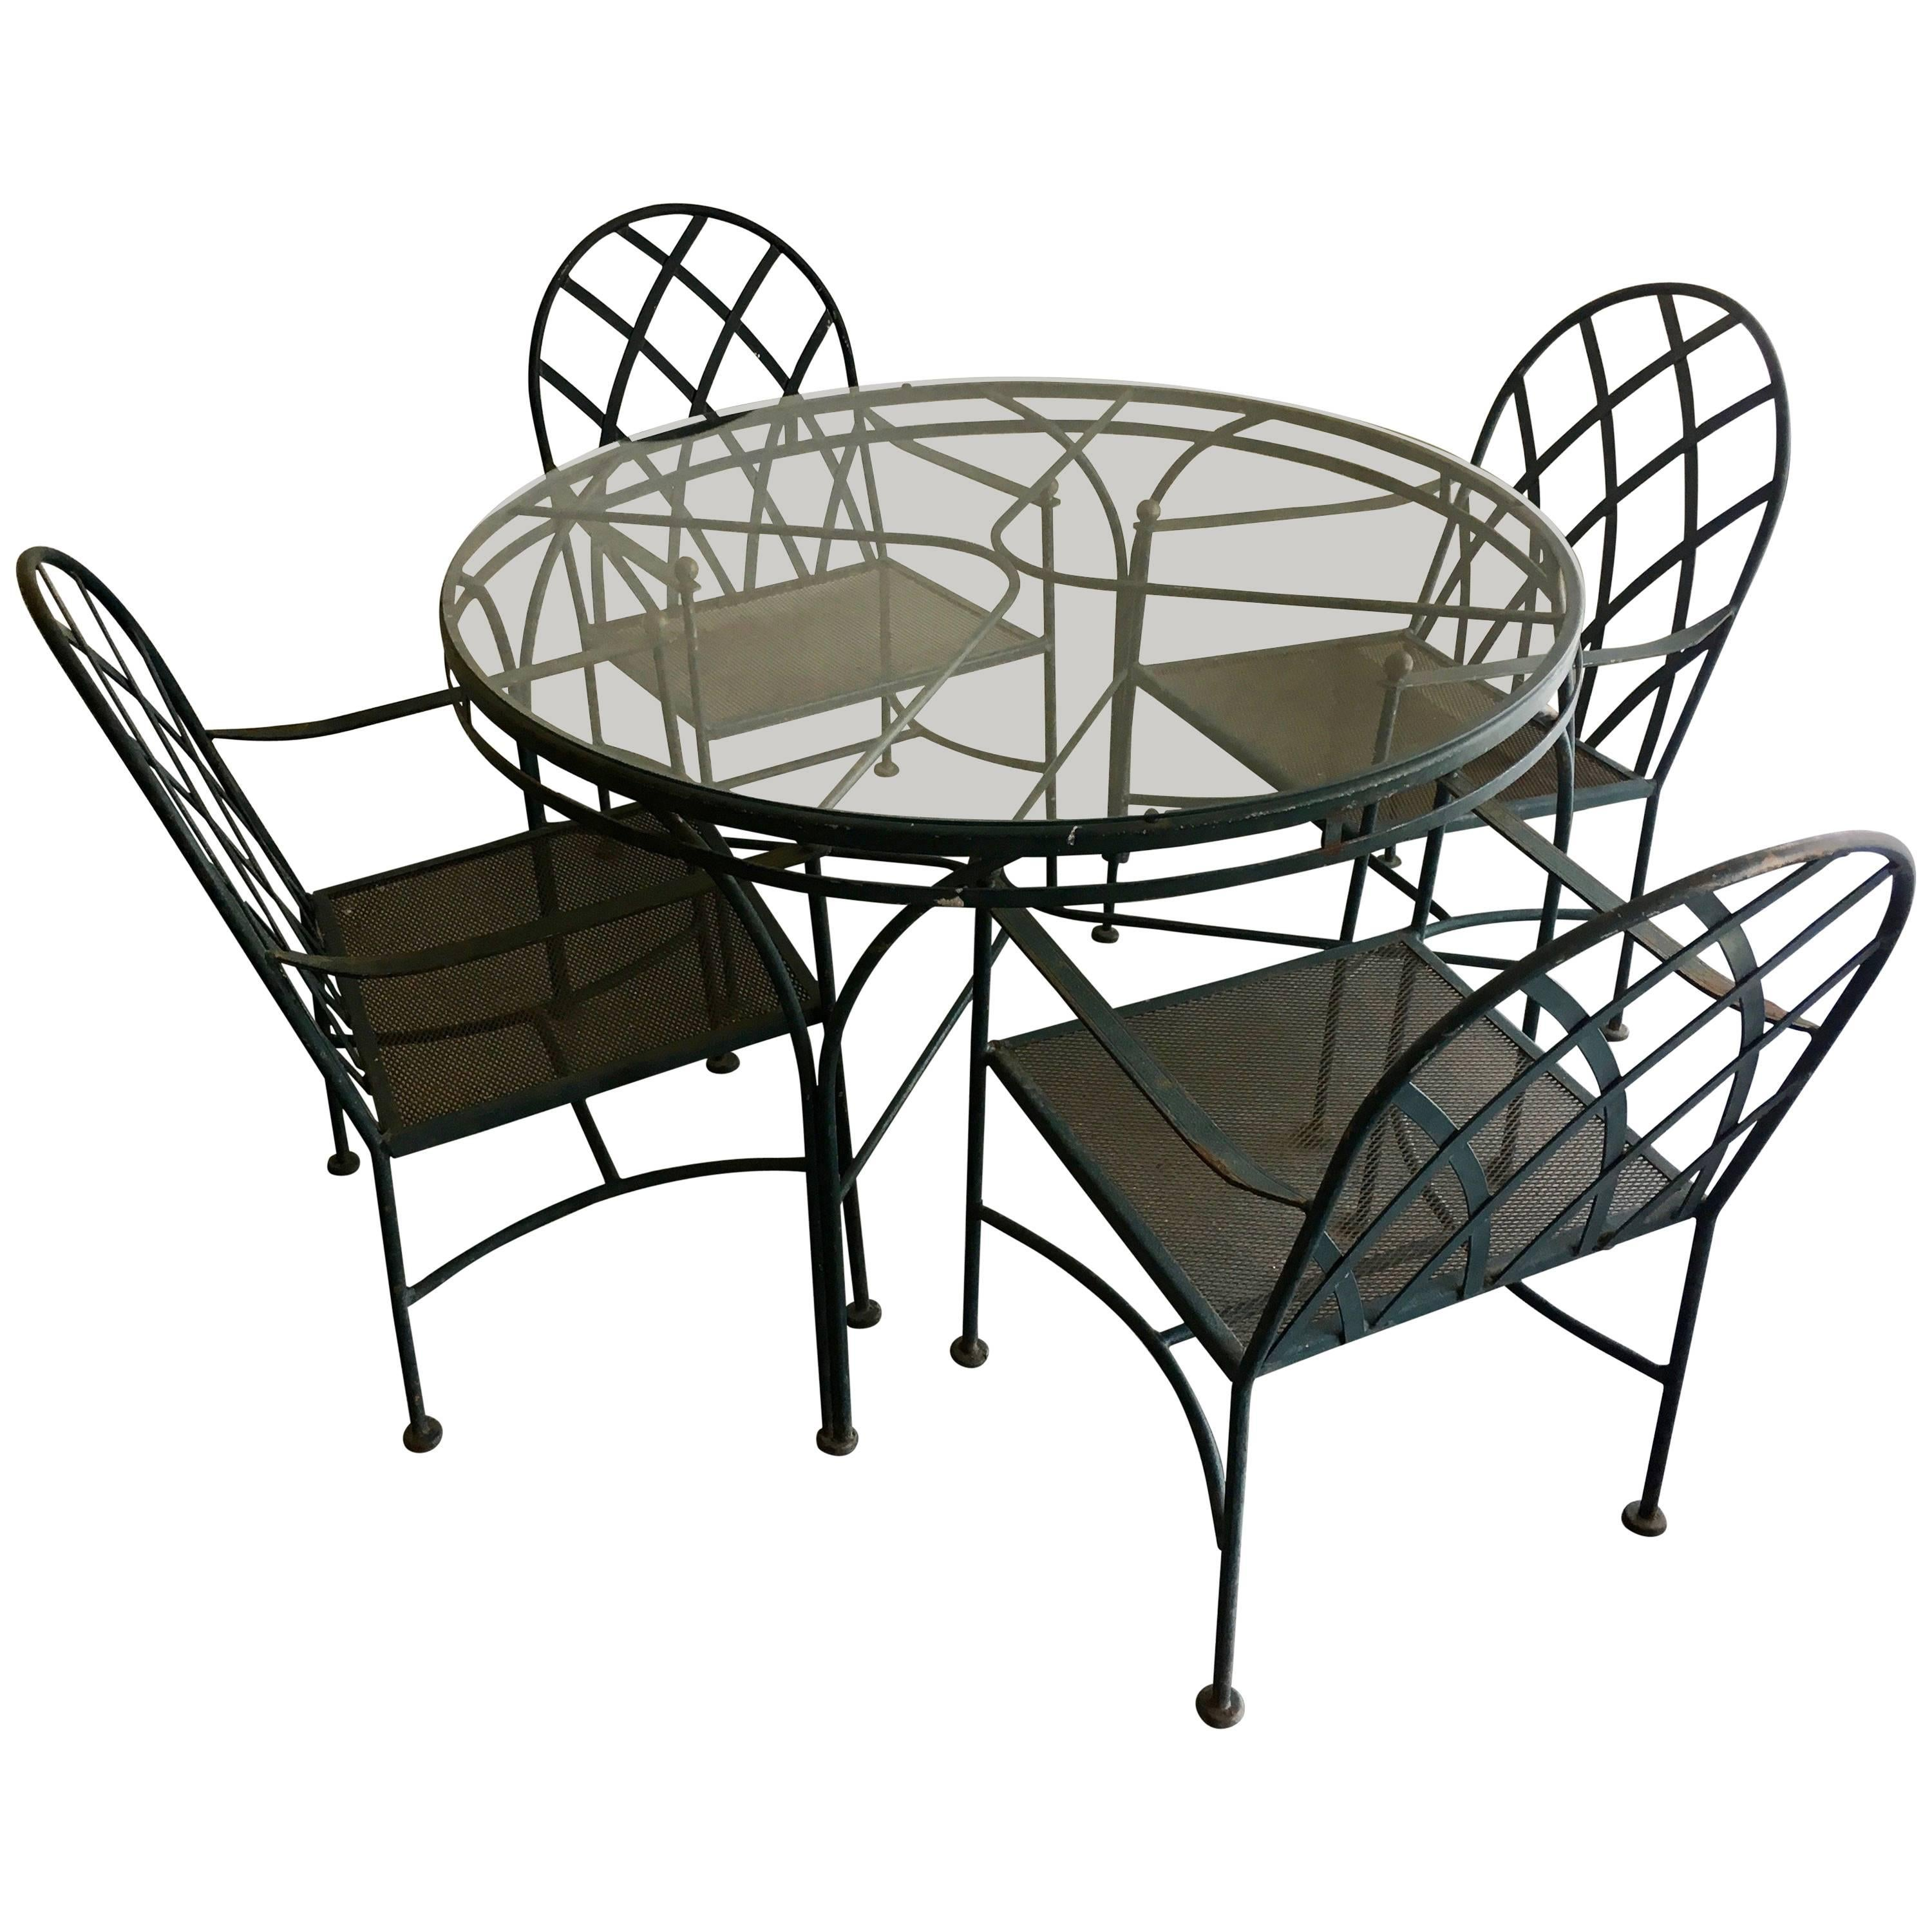 Superbe Vintage Wrought Iron Outdoor Patio Dining Set With Four Chairs